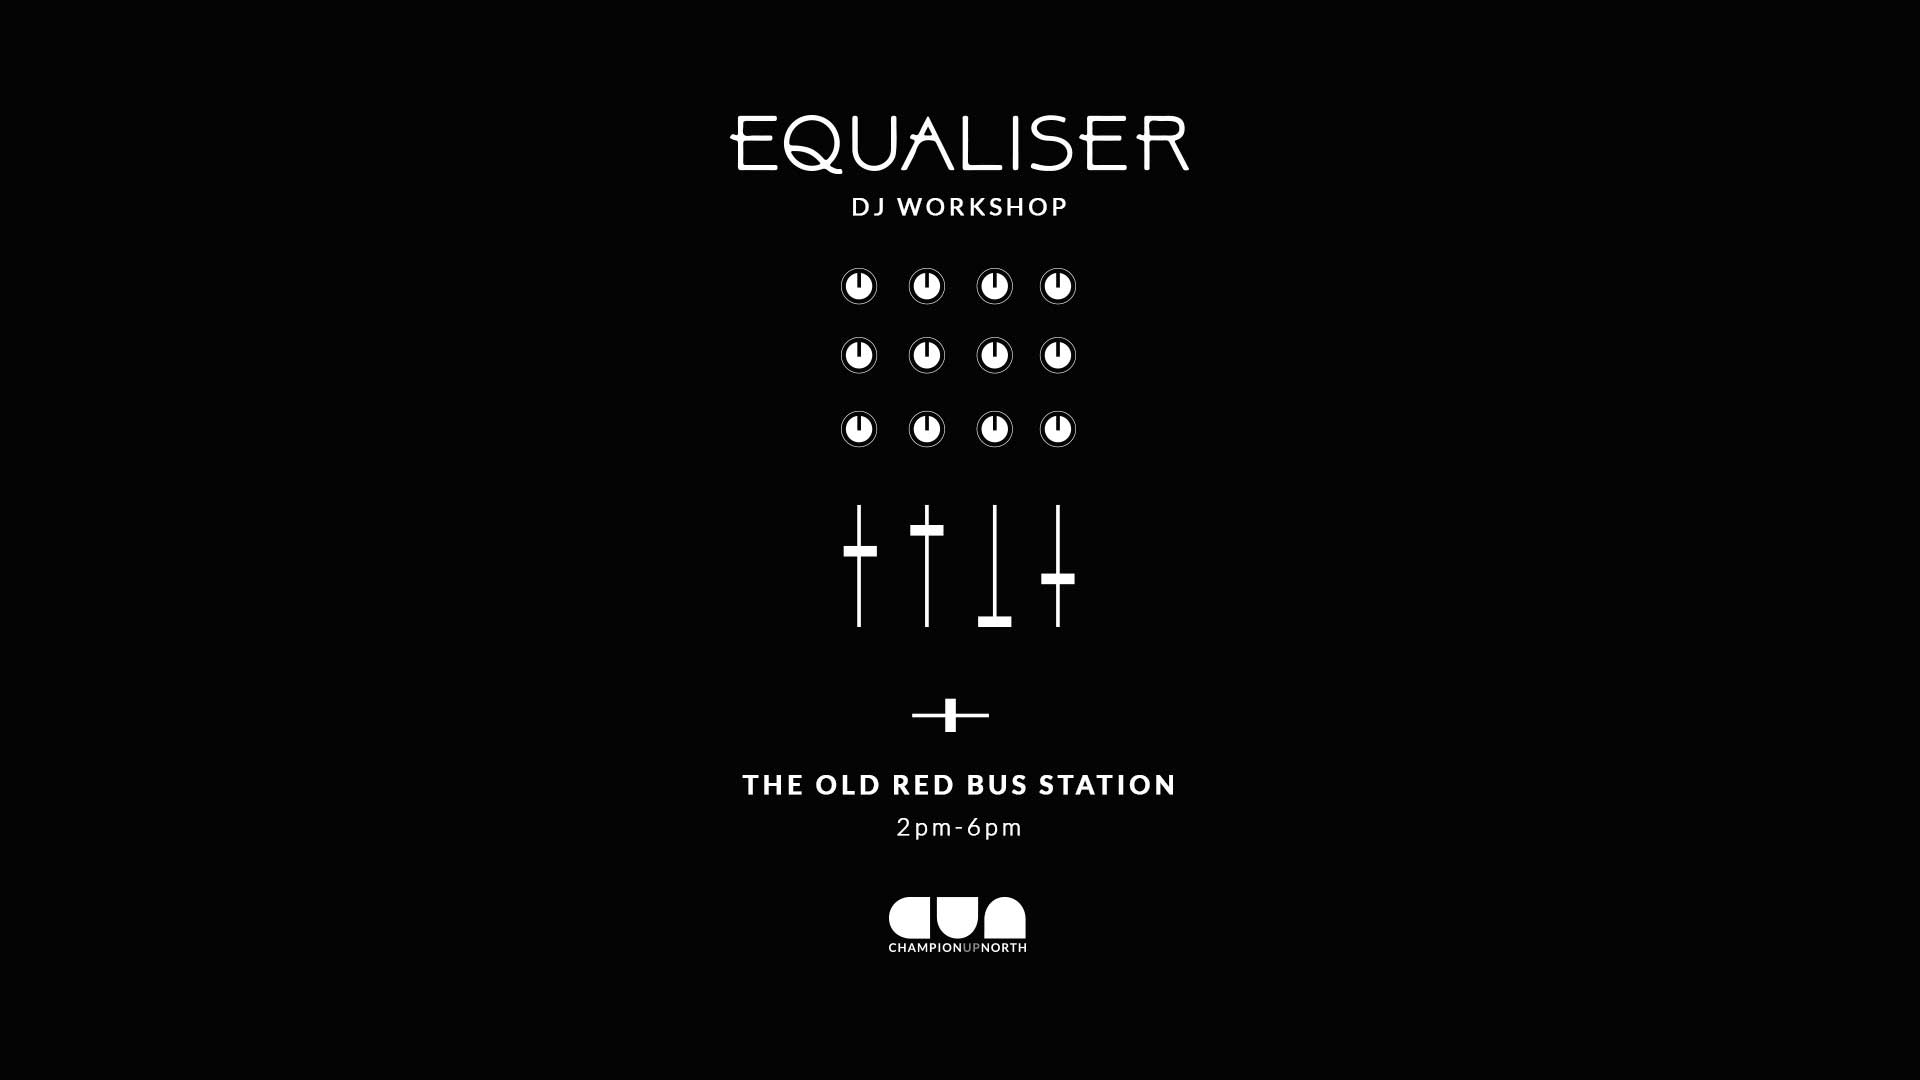 equaliser workshops